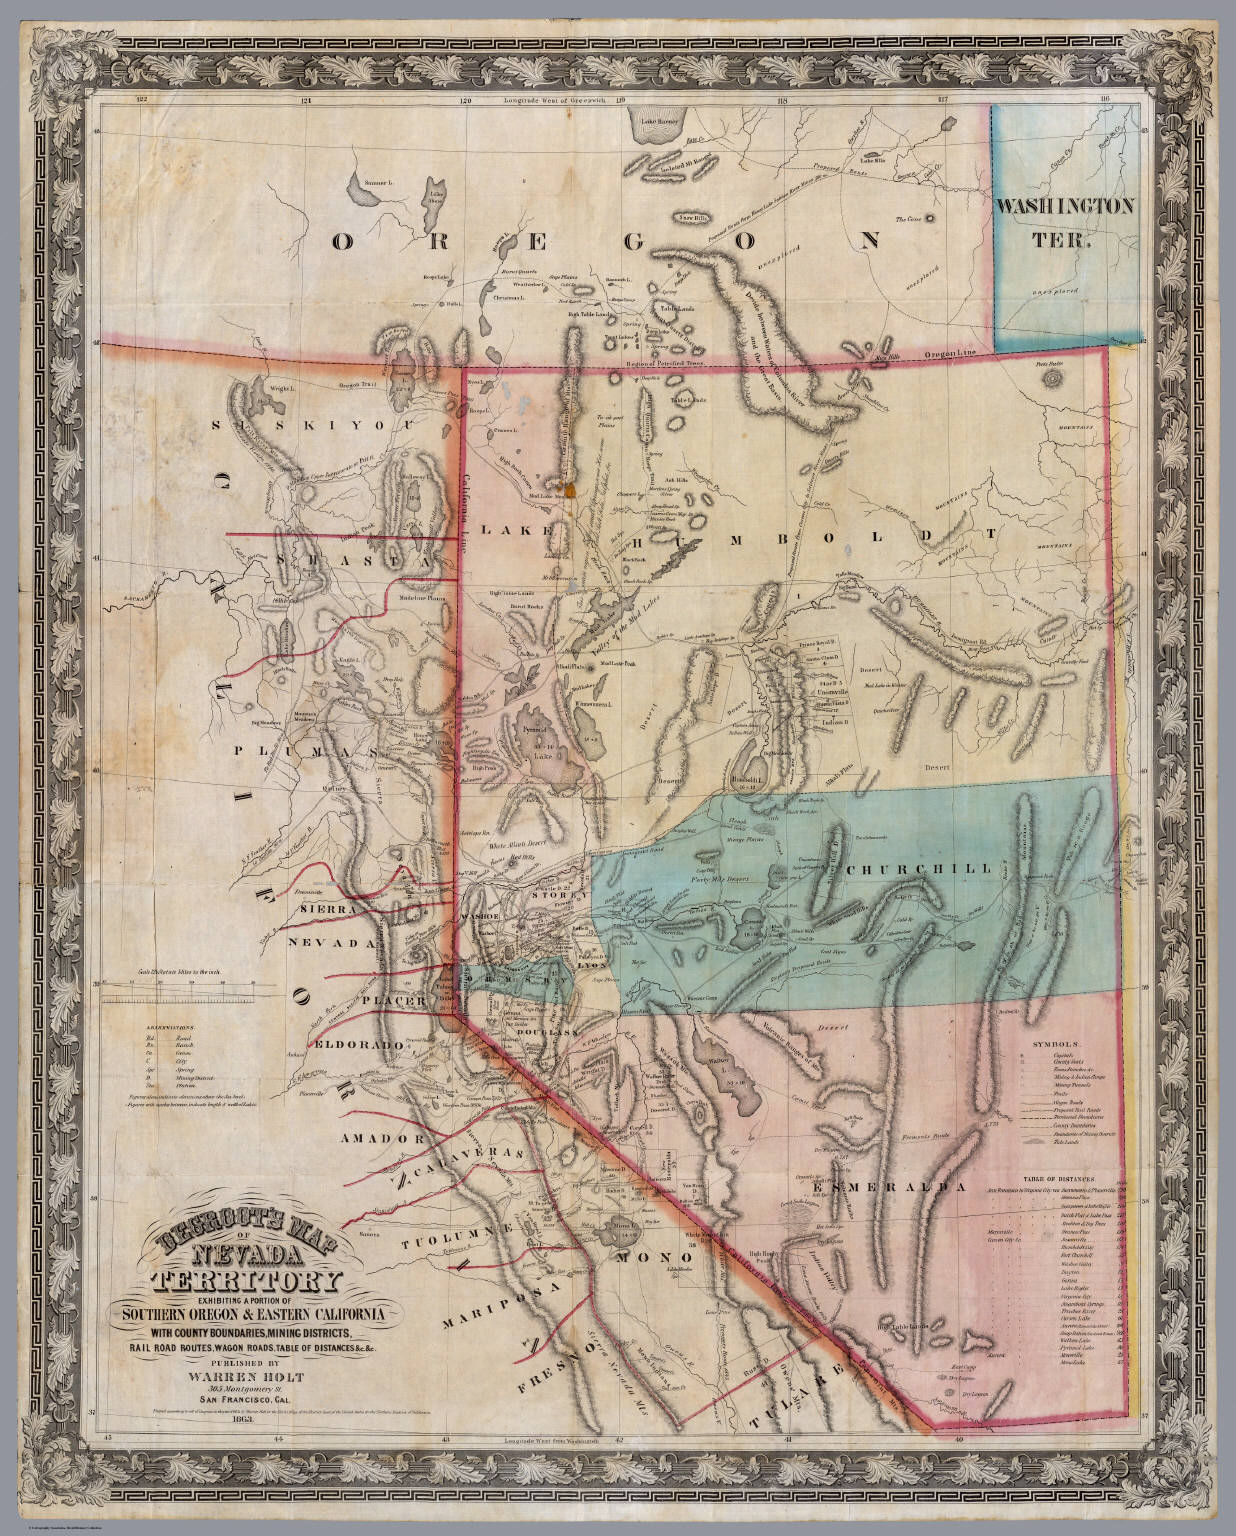 DeGroots Map Of Nevada Territory David Rumsey Historical Map - Map of nevada